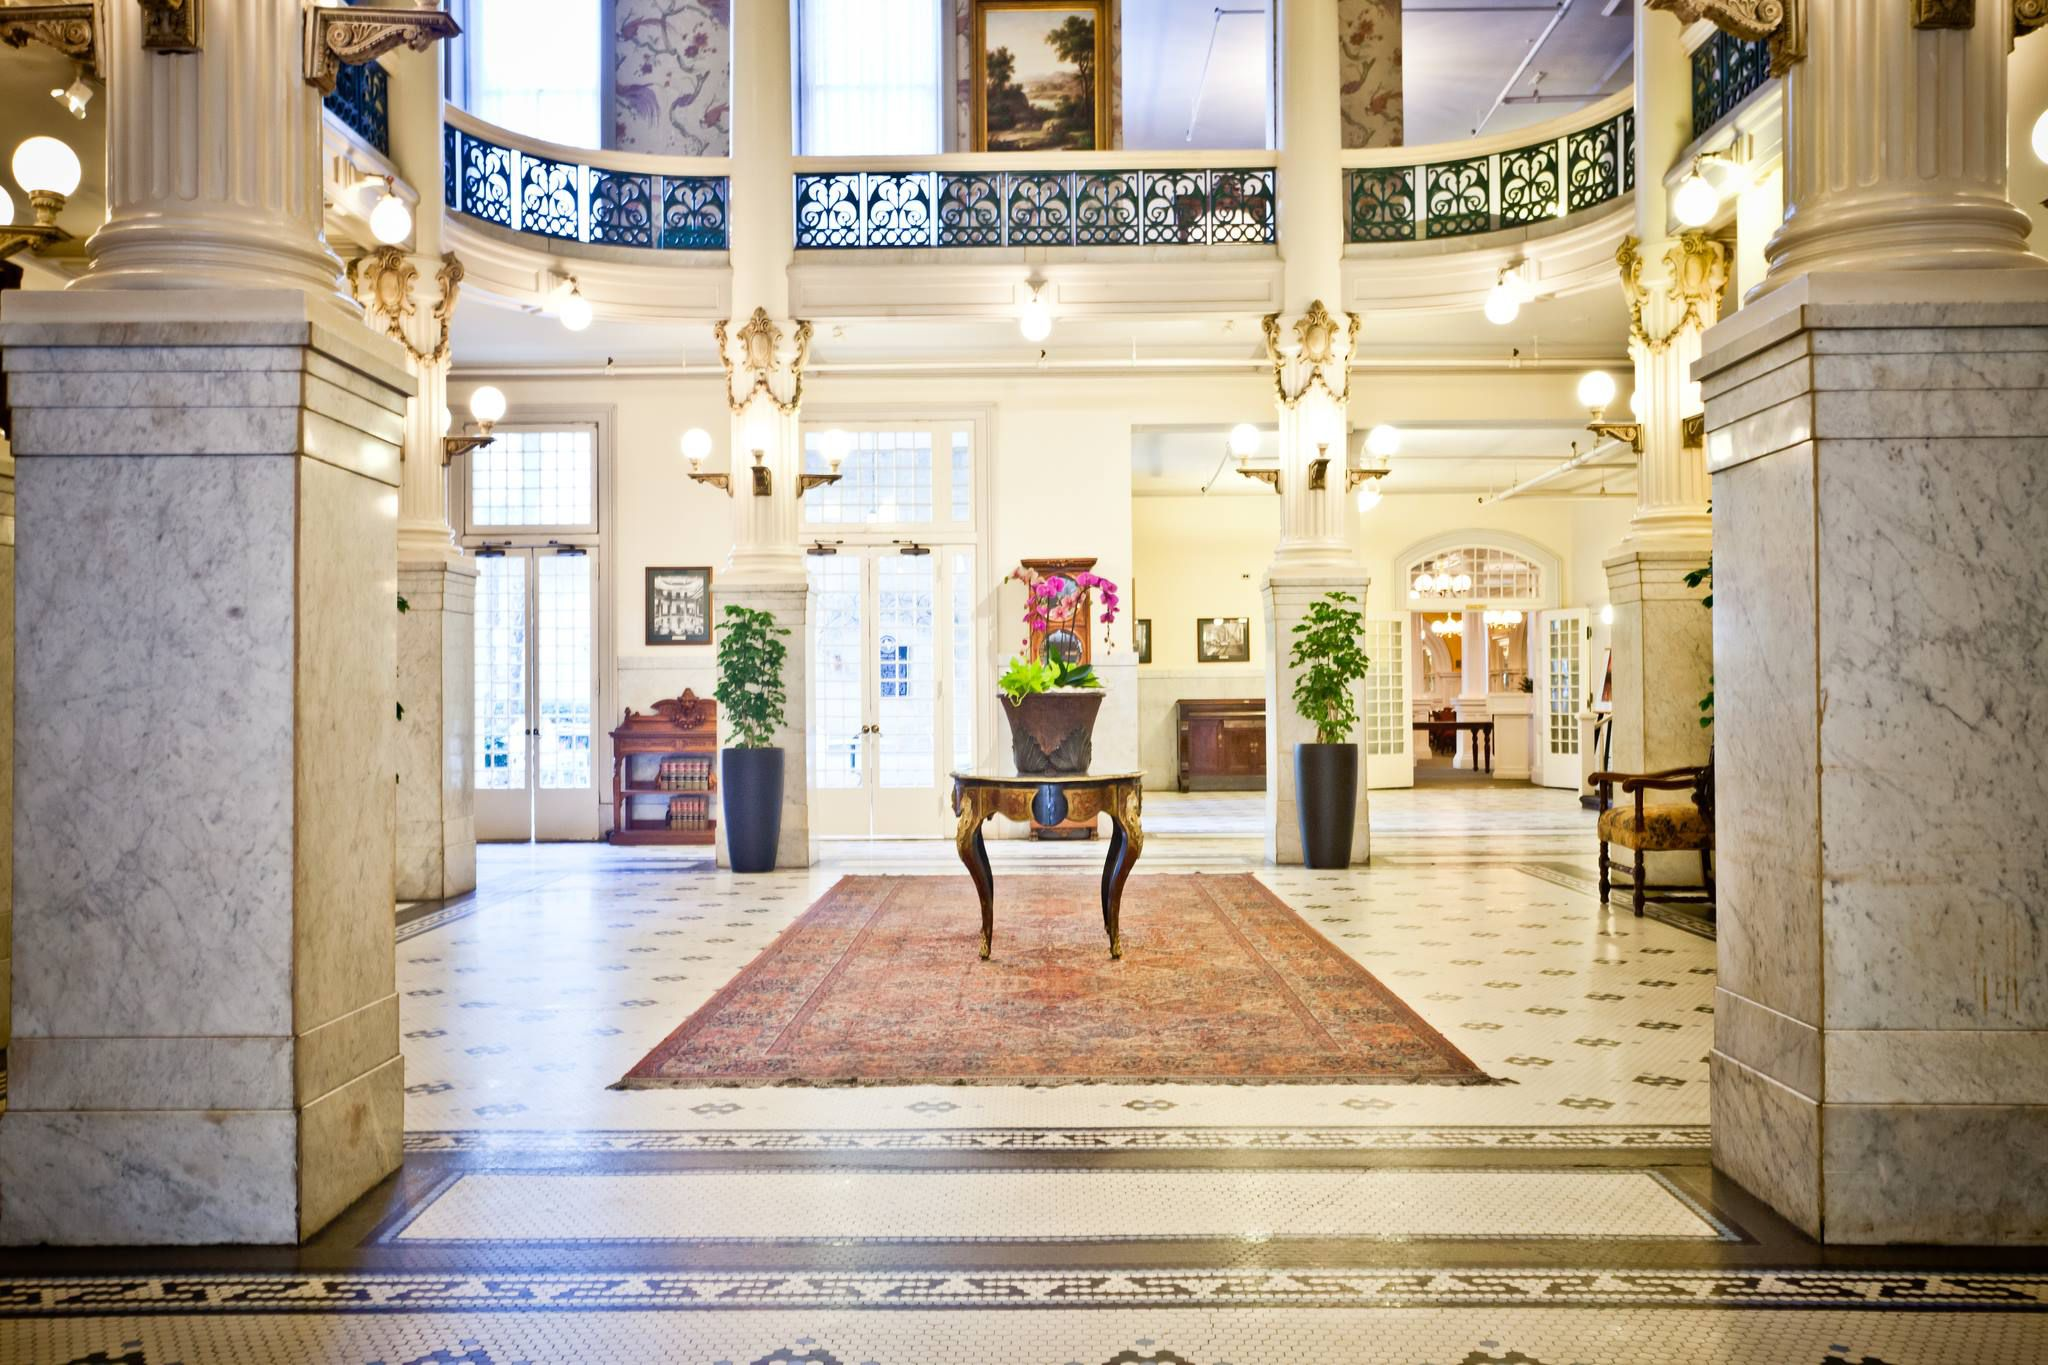 The lobby of Menger Hotel